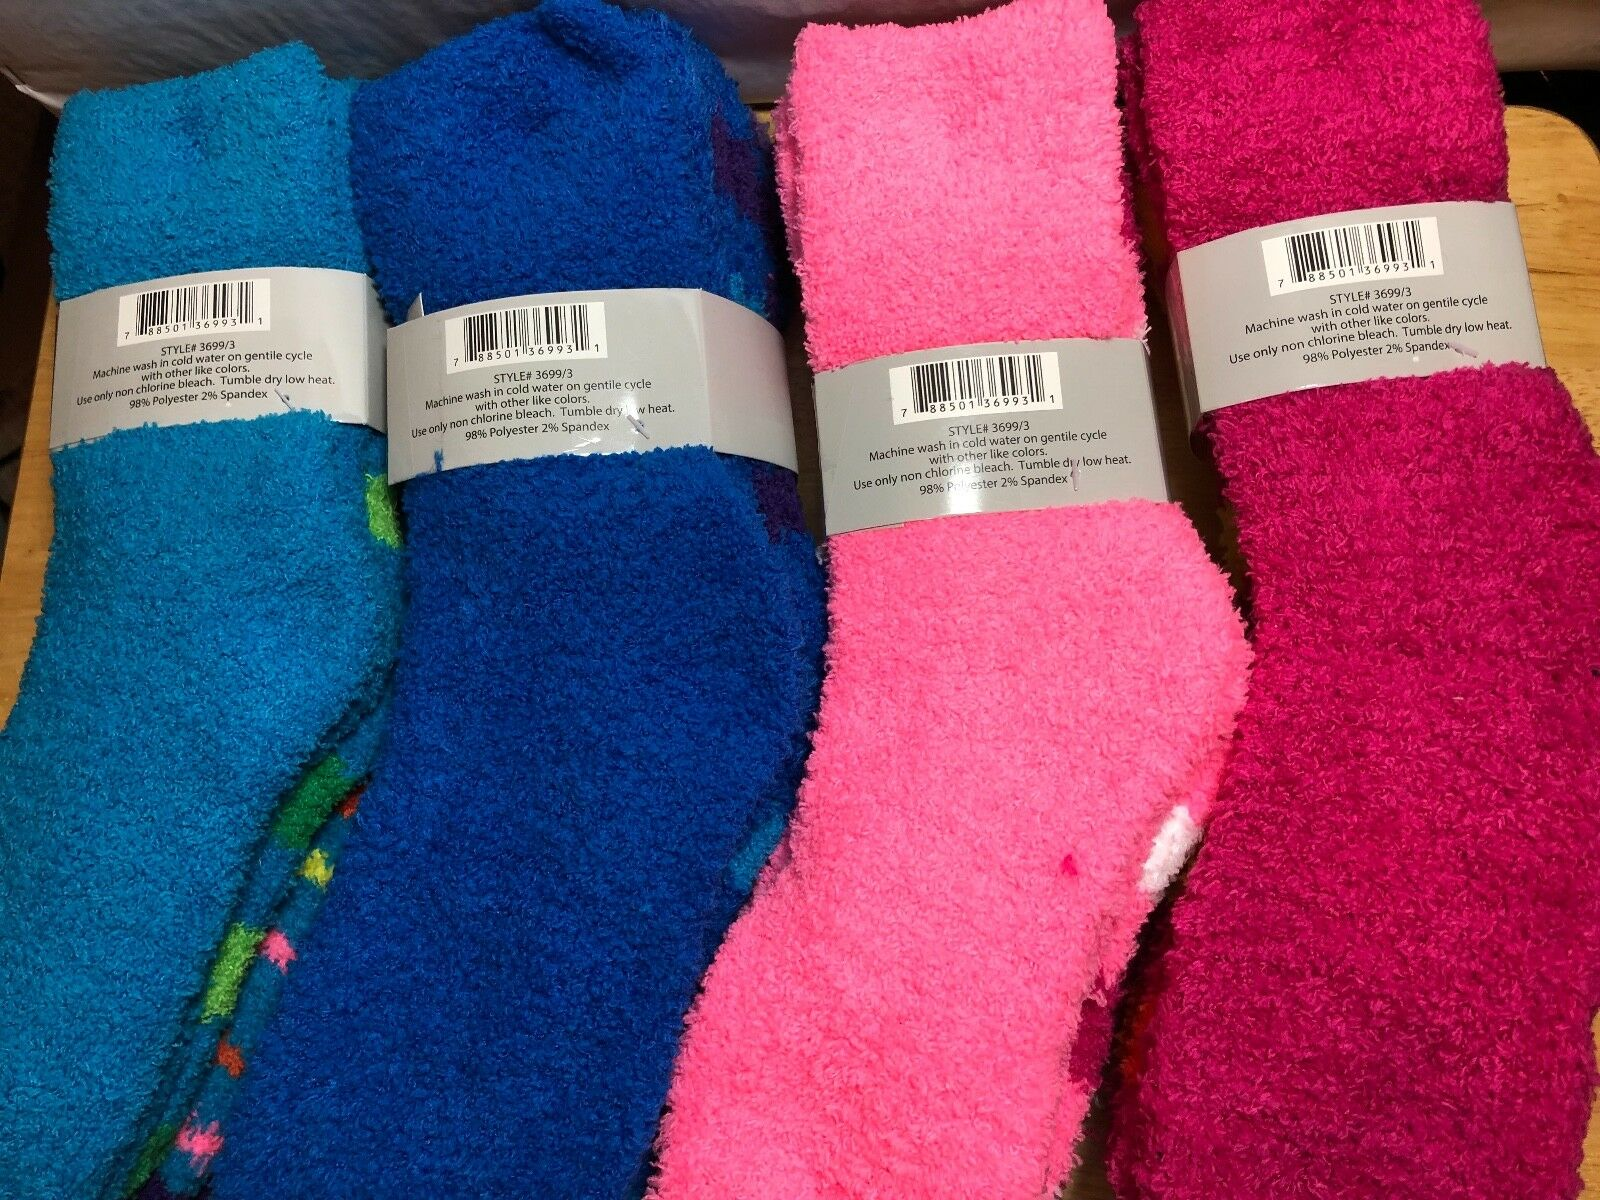 3 PAIRS PACK WOMEN COZY SOCKS SUPER SOFT 9-11 POLYESTER Clothing, Shoes & Accessories